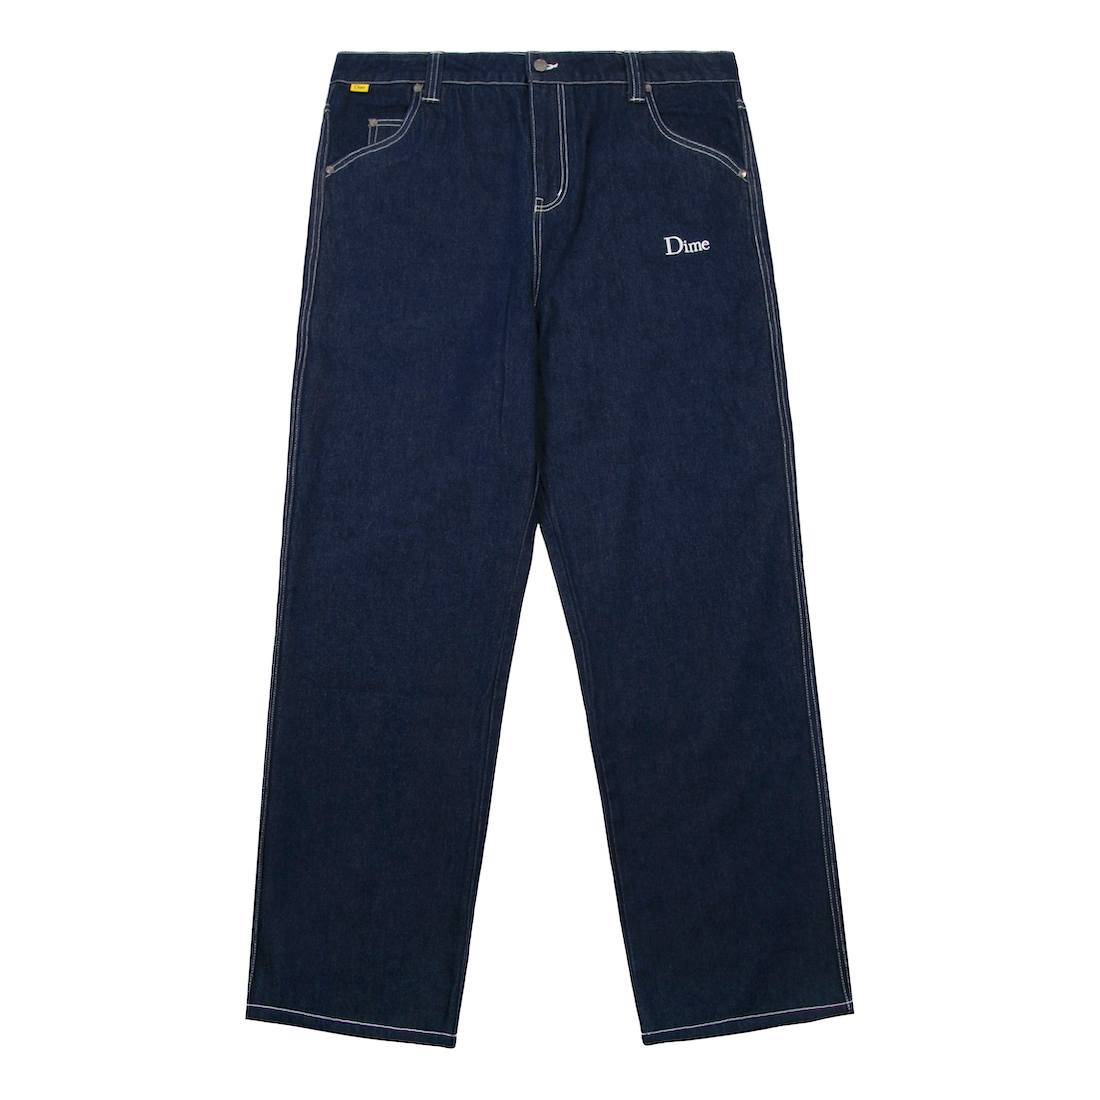 【Dime】Denim Pants - Dark Indigo